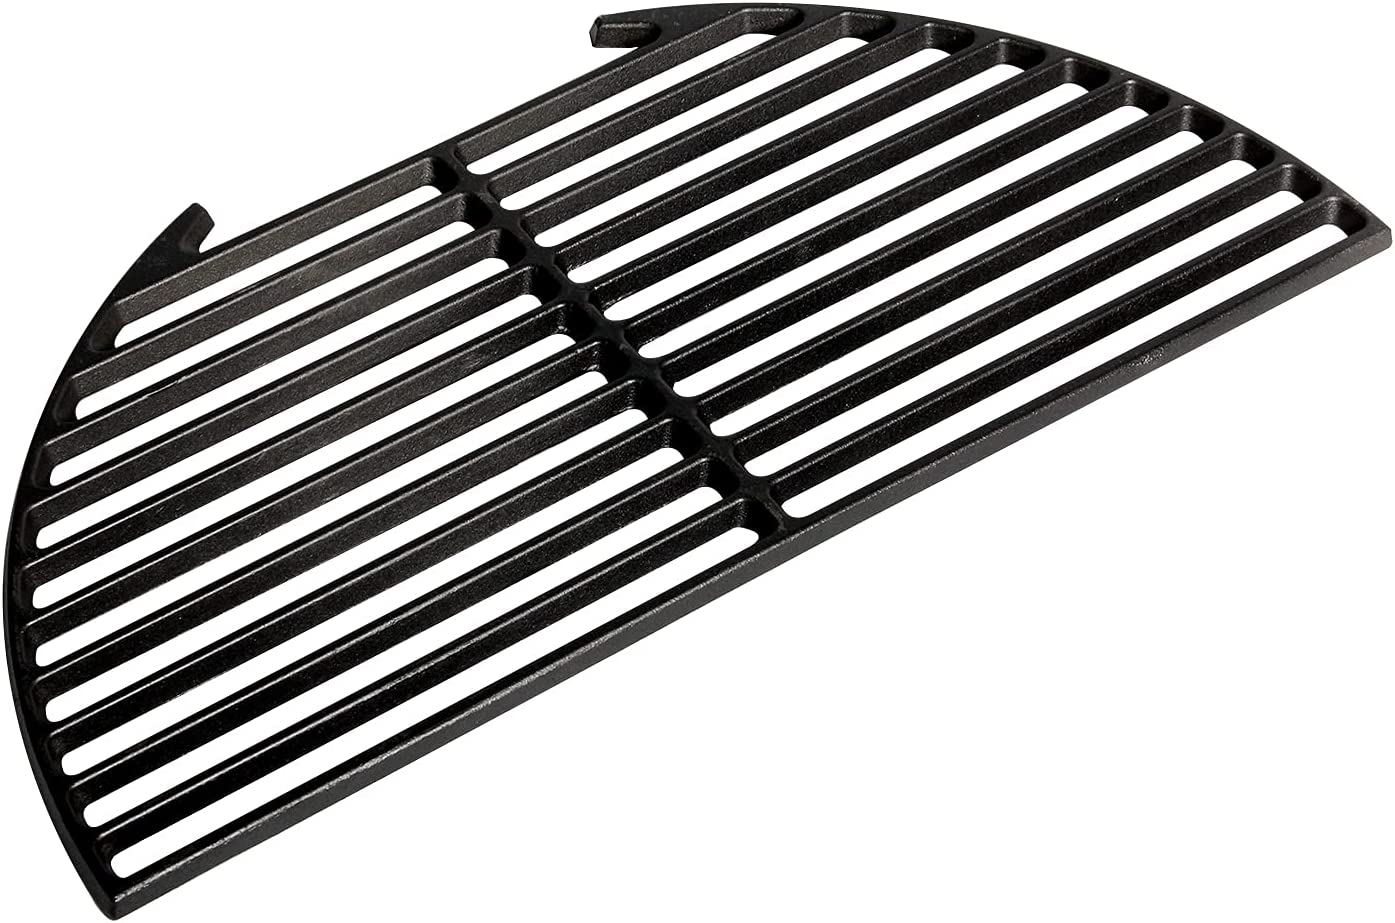 FIRELOOP 18 inch Half Moon Cast Iron Detroit Mall Free Shipping Cheap Bargain Gift G Large for Grate Grids Big